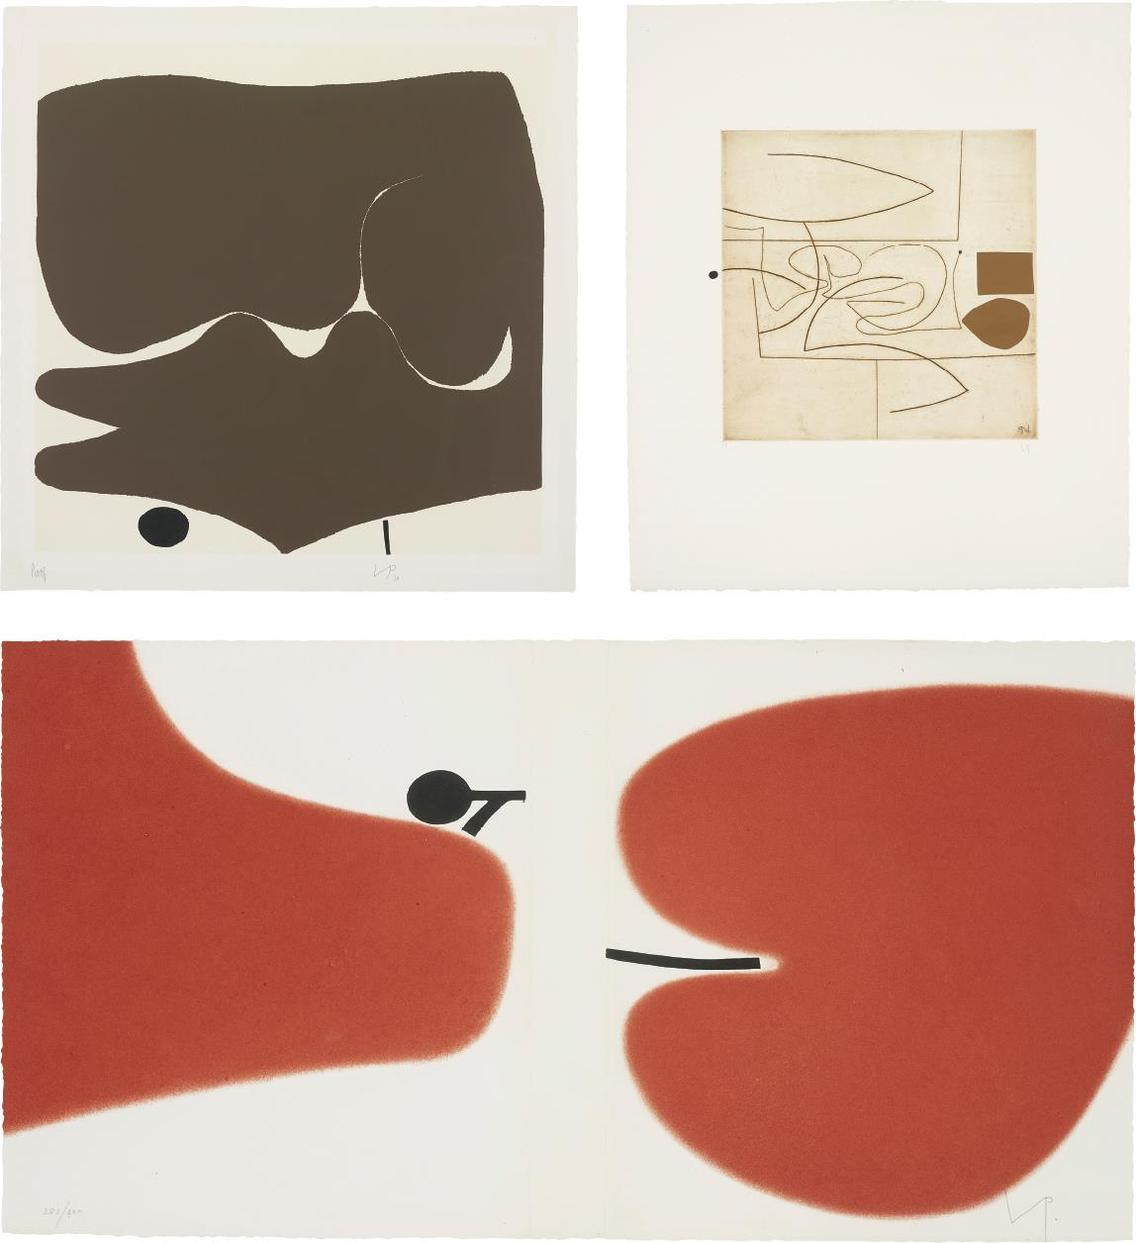 Victor Pasmore-Transformation 3; Linear Motif In Three Movements; And Untitled-1979